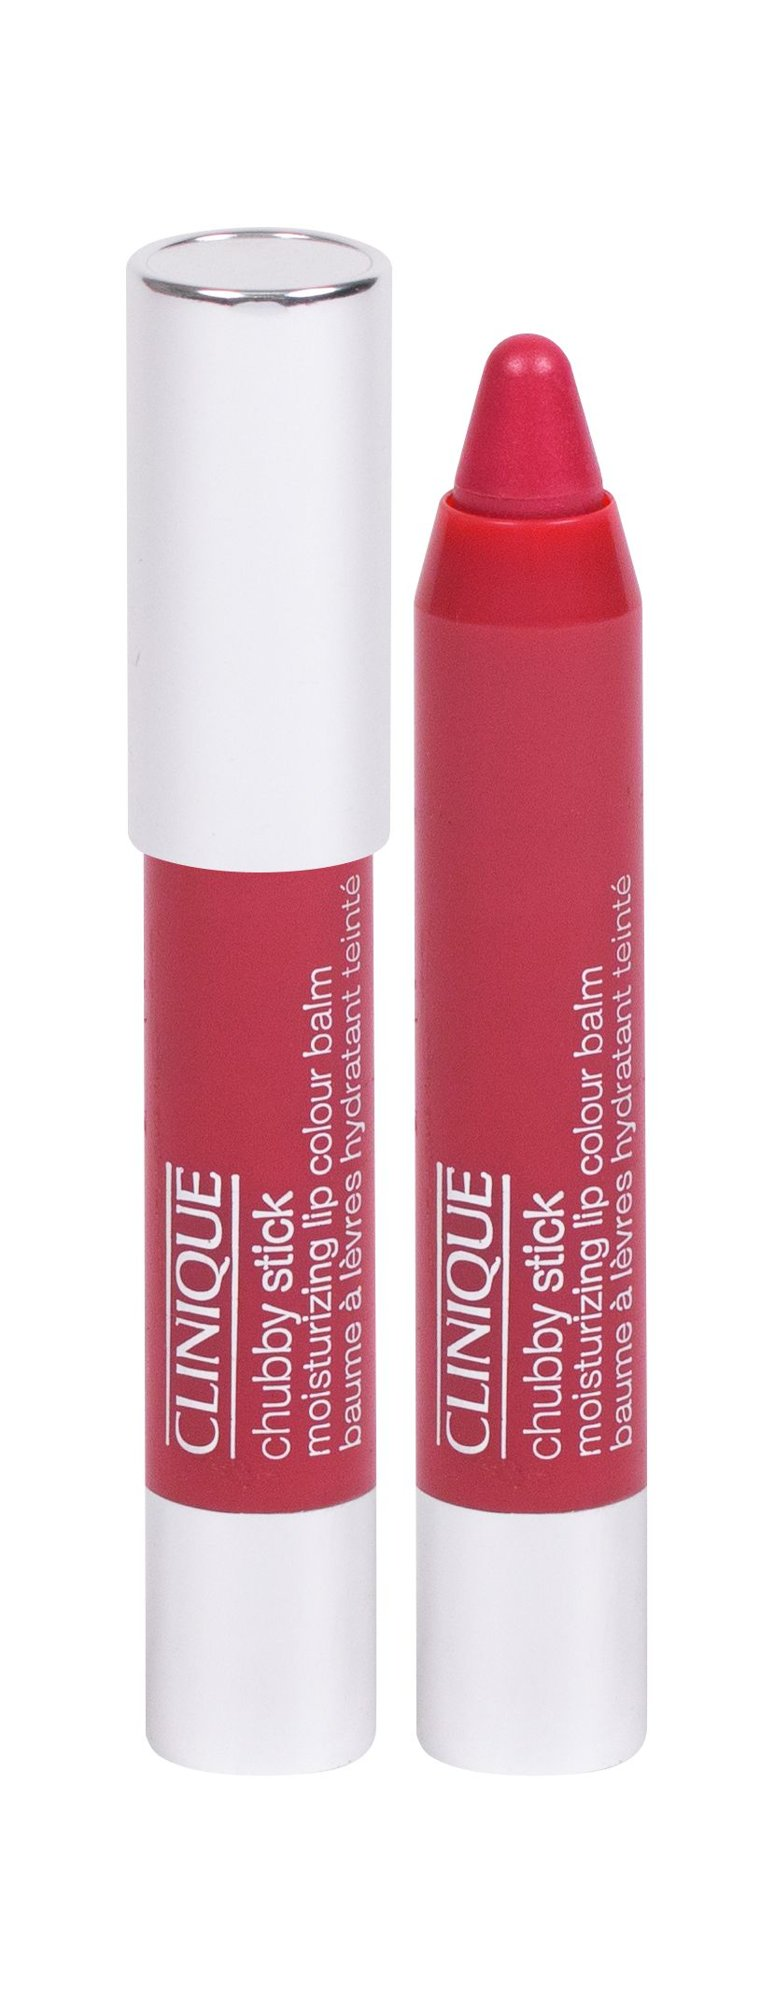 Clinique Chubby Stick Lipstick 3ml 05 Chunky Cherry